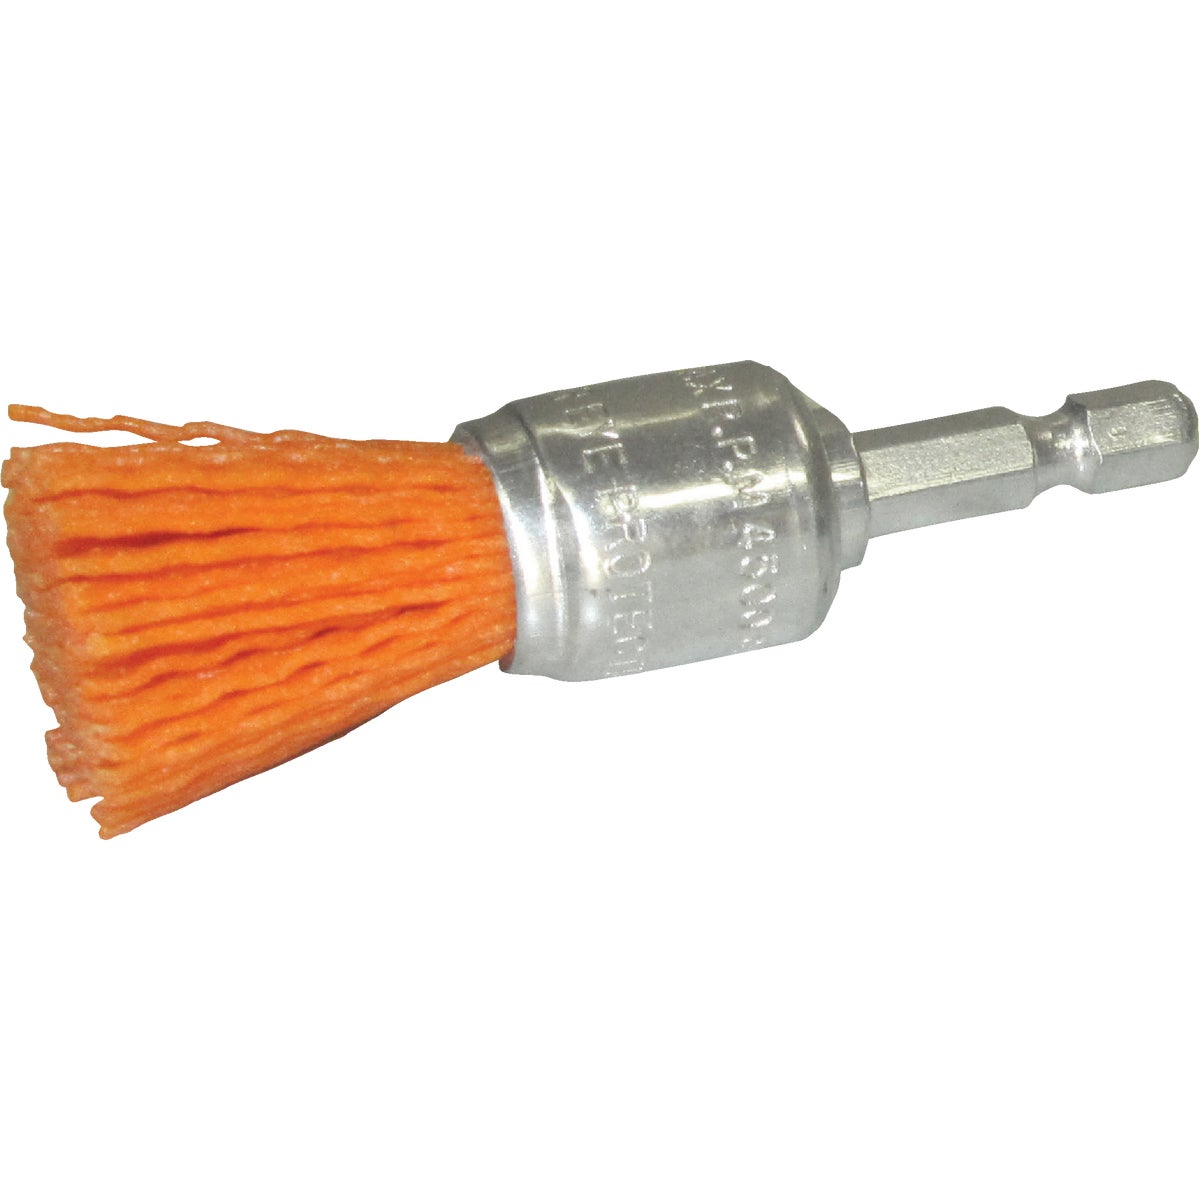 "3/4"" COARSE END BRUSH"